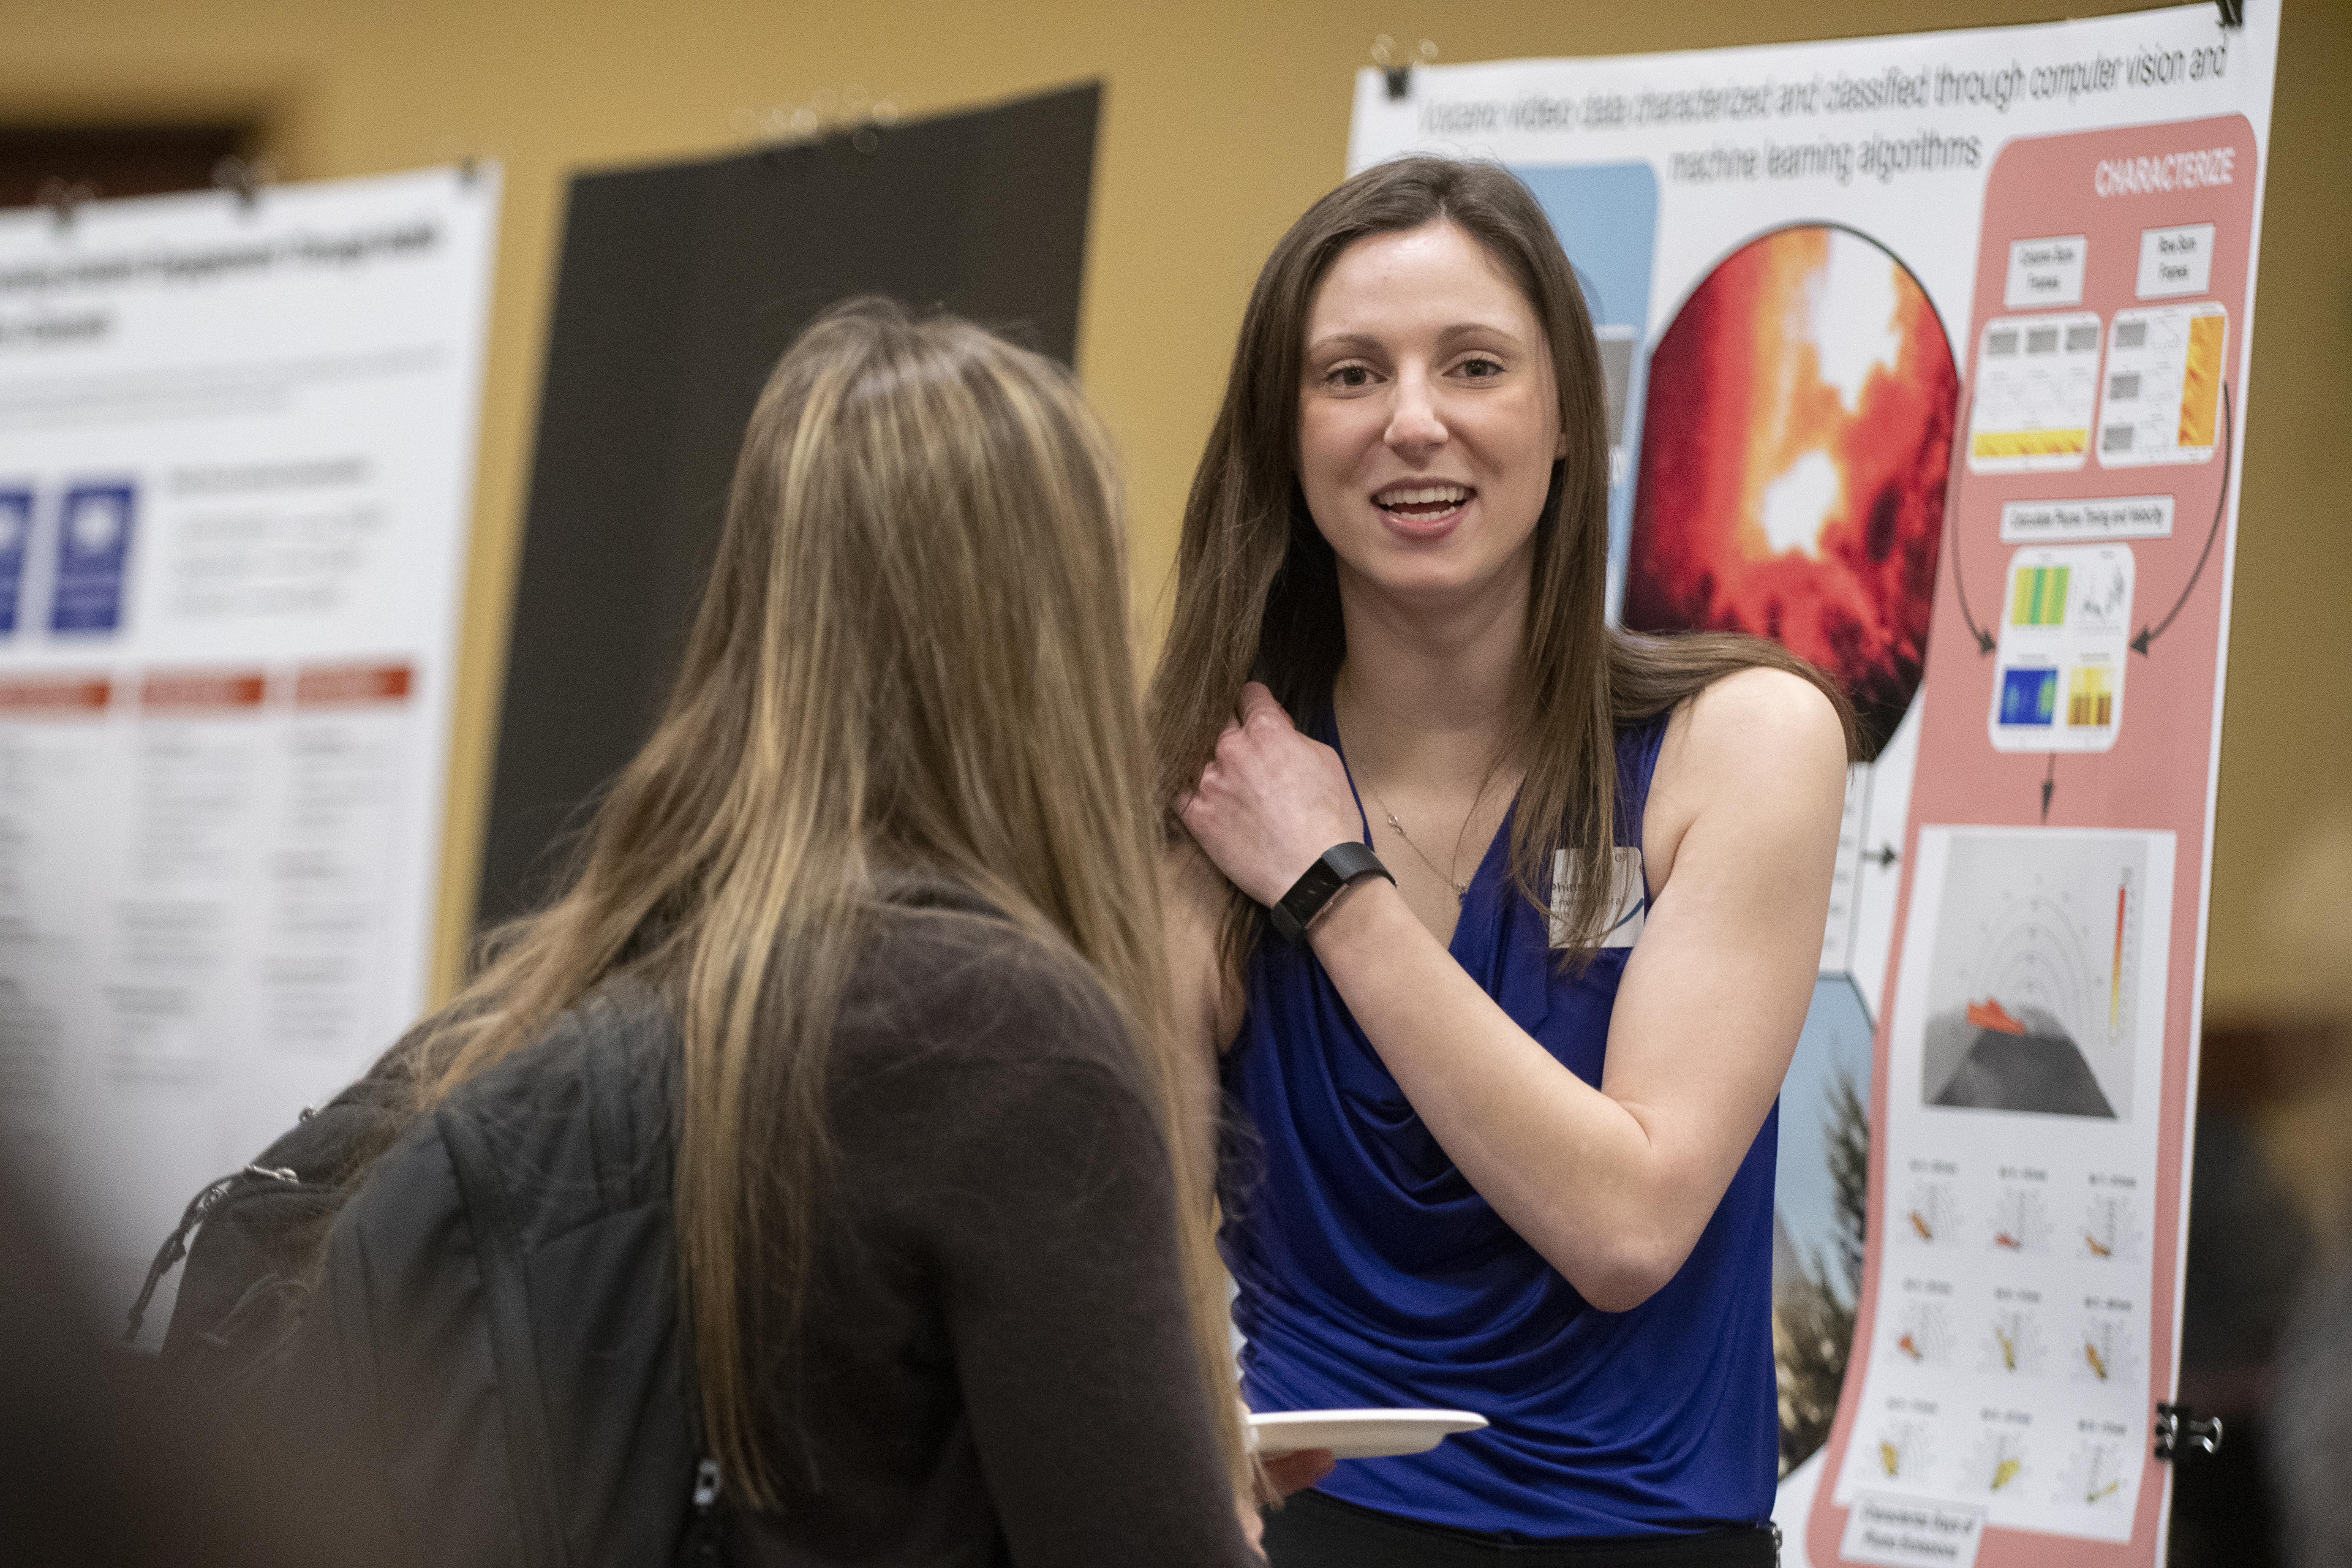 Graduate Student Showcase, photo by Rogue Huitron